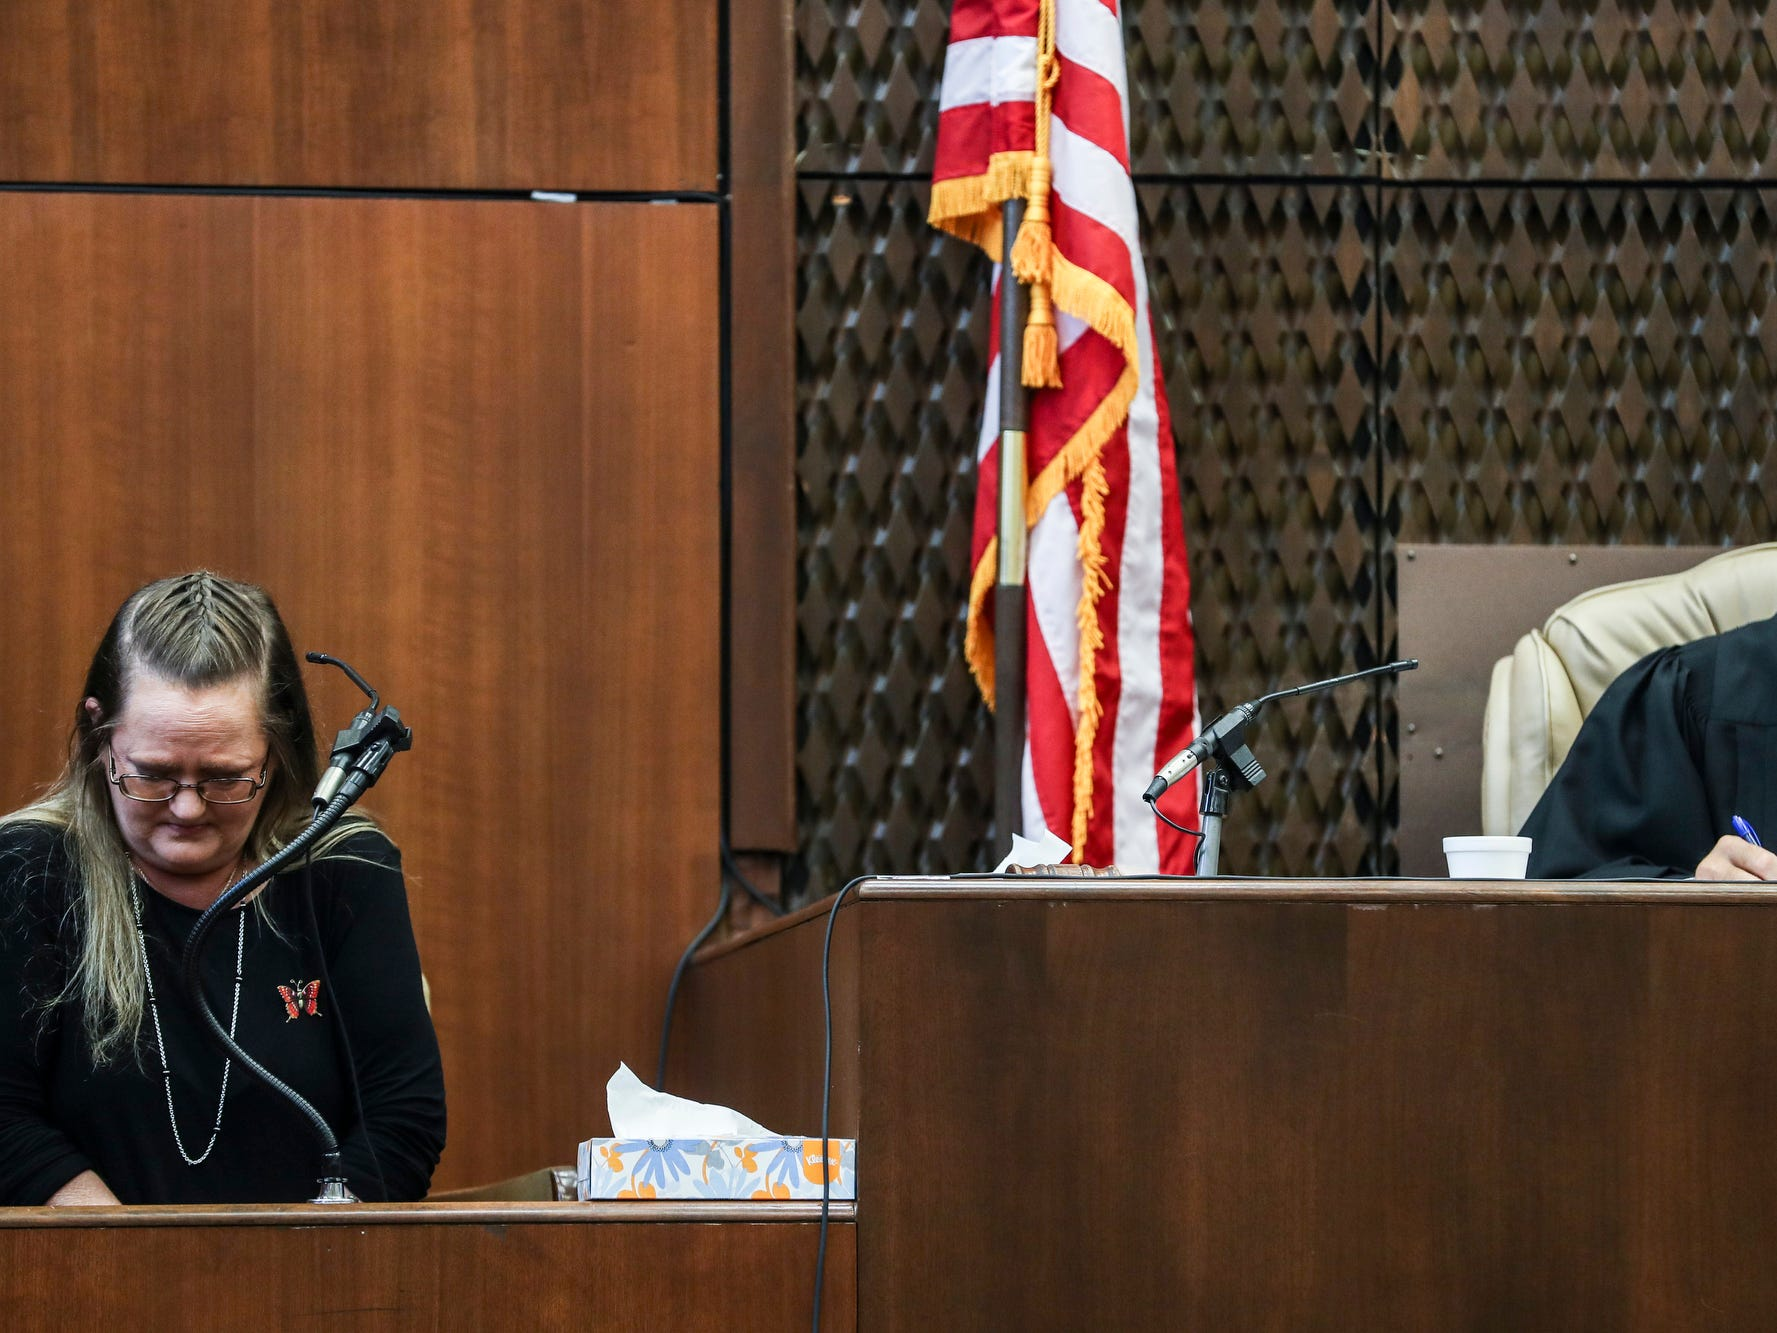 Lisa Chambers, left, Jessica Chambers mother, is seen on the stand during the first day of the retrial of Quinton Tellis in Batesville, Miss., Tuesday, Sept. 25 2018. Tellis is charged with burning 19-year-old Jessica Chambers to death almost three years ago on Dec. 6, 2014. Tellis has pleaded not guilty to the murder.